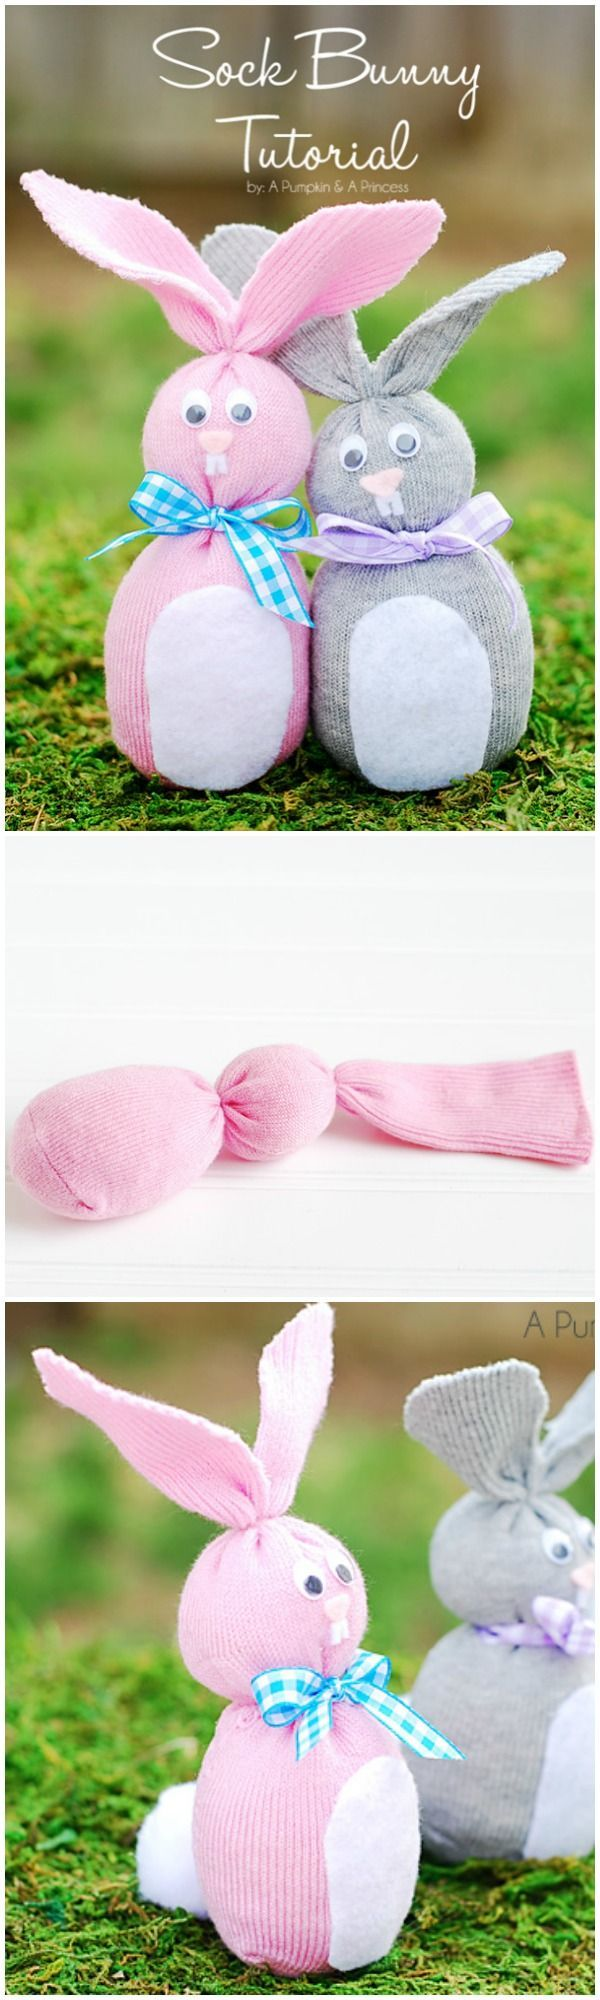 52 best may classroom ideas images on pinterest school free diy sock bunny tutorial how to make sock bunnies out of baby socks easy negle Images